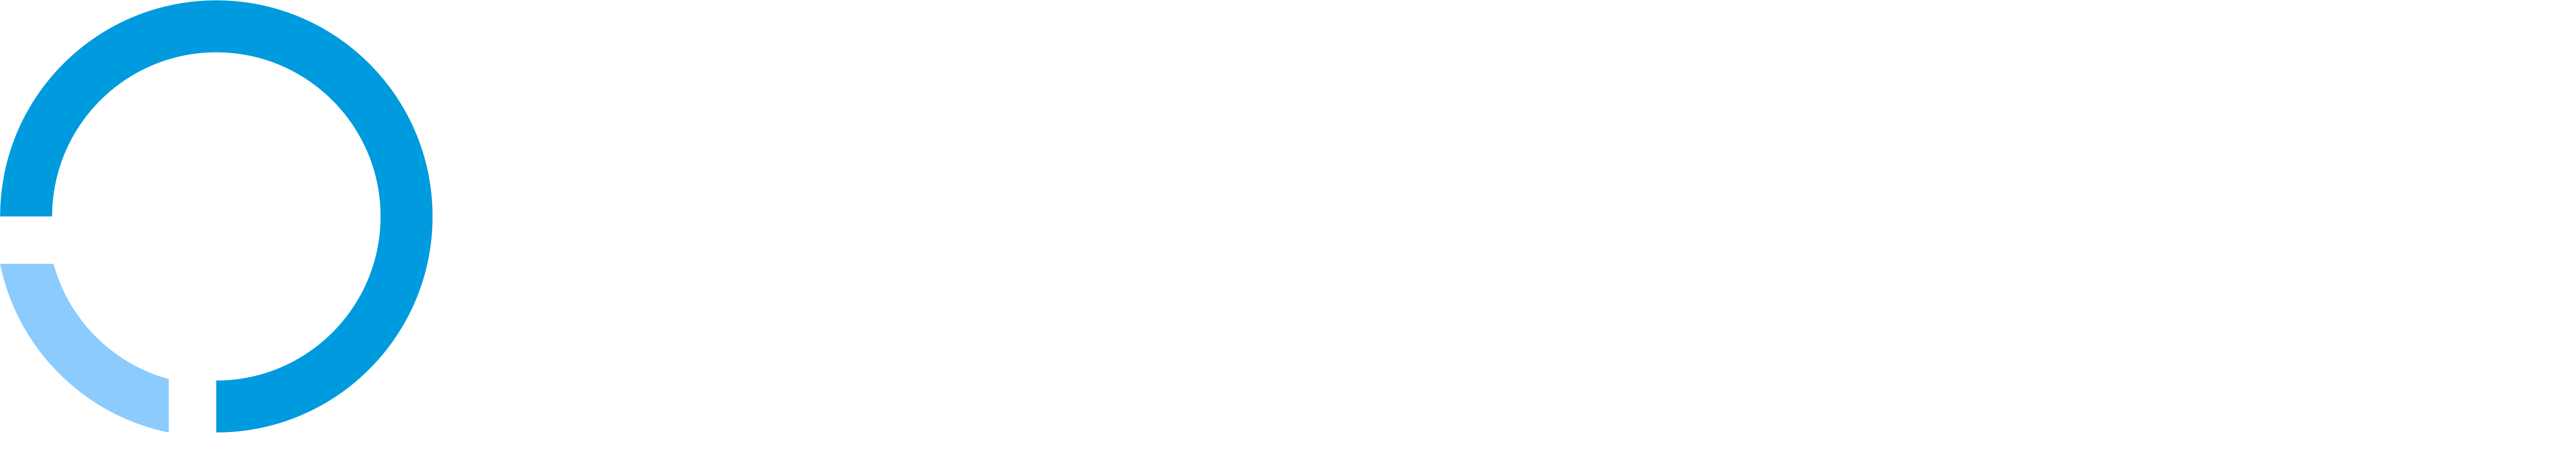 Electric Mobility Challenge